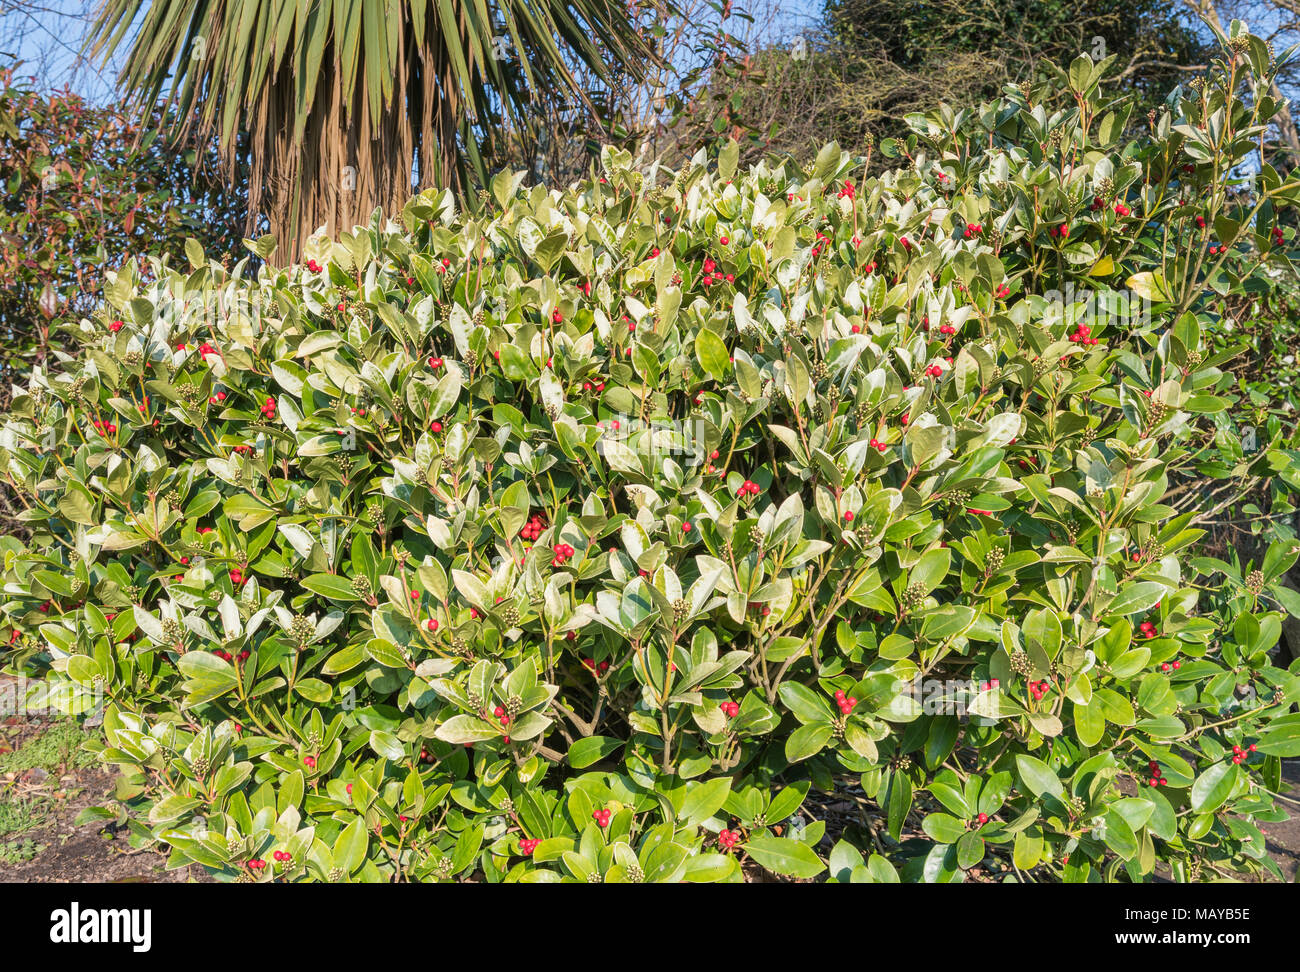 Japanische Laurel (Aucuba japonica) Bush mit roten Beeren wachsen in einem Park im Winter in West Sussex, England, UK. Stockbild